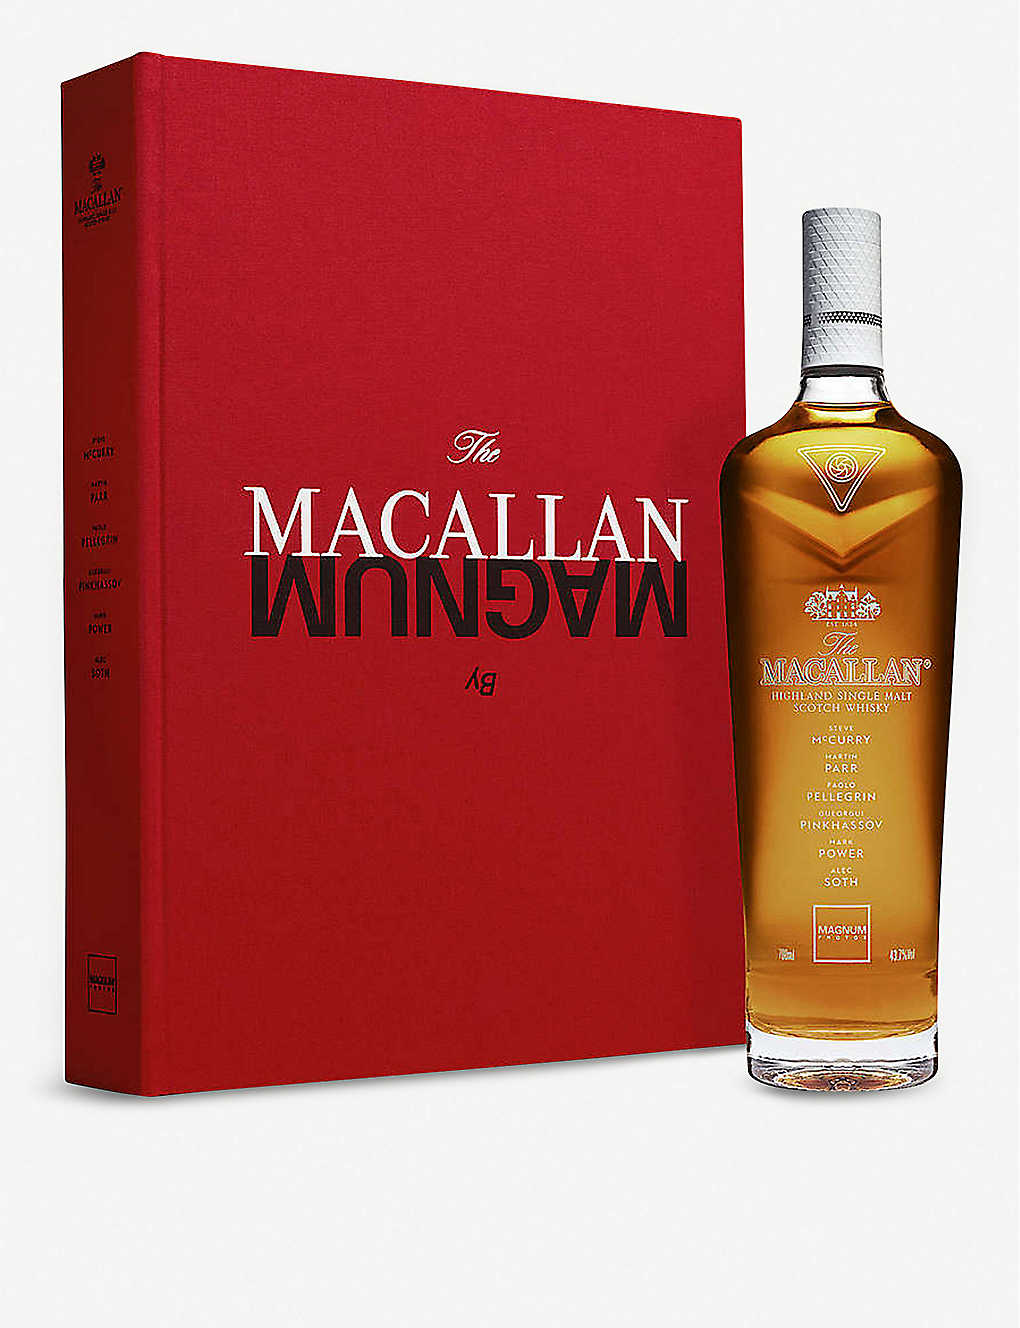 MACALLAN: Masters of Photography Magnum highland single malt Scotch whisky